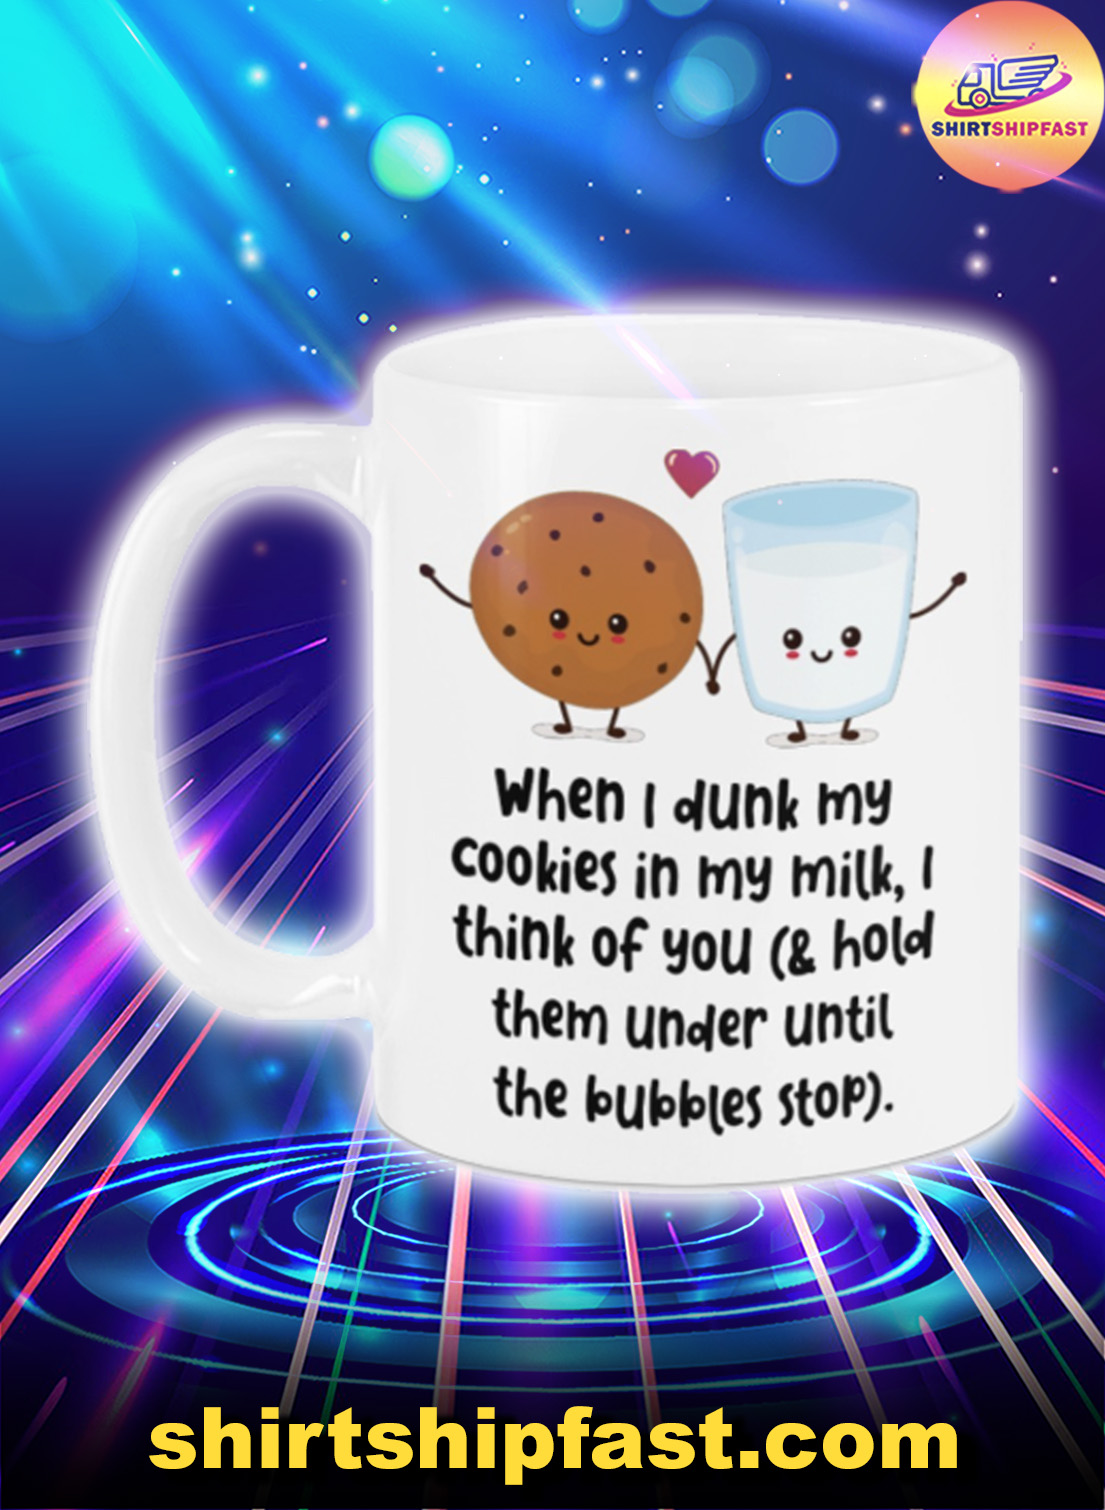 When I drunk my cookies in my milk I think of you mug - Picture 1